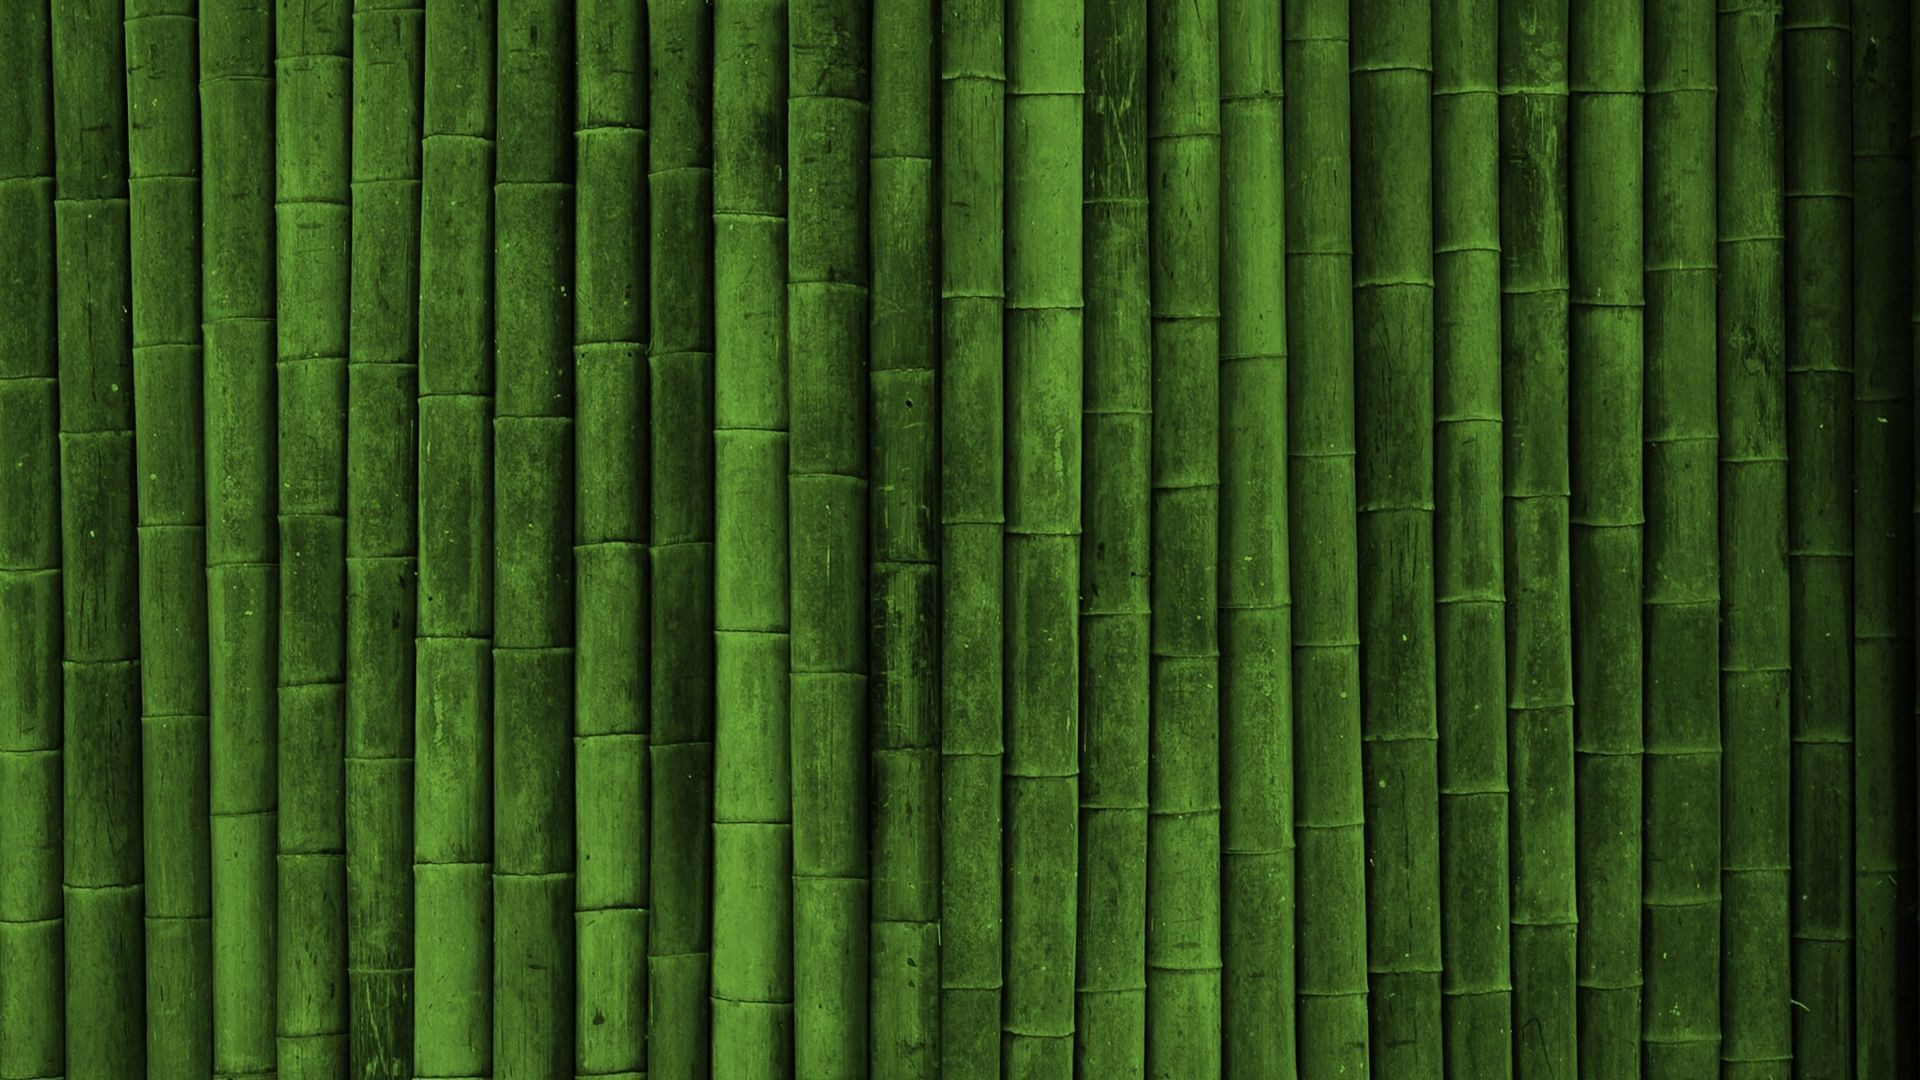 1920x1080 Free-Download-HD-Green-for-Windows-and-Mac-